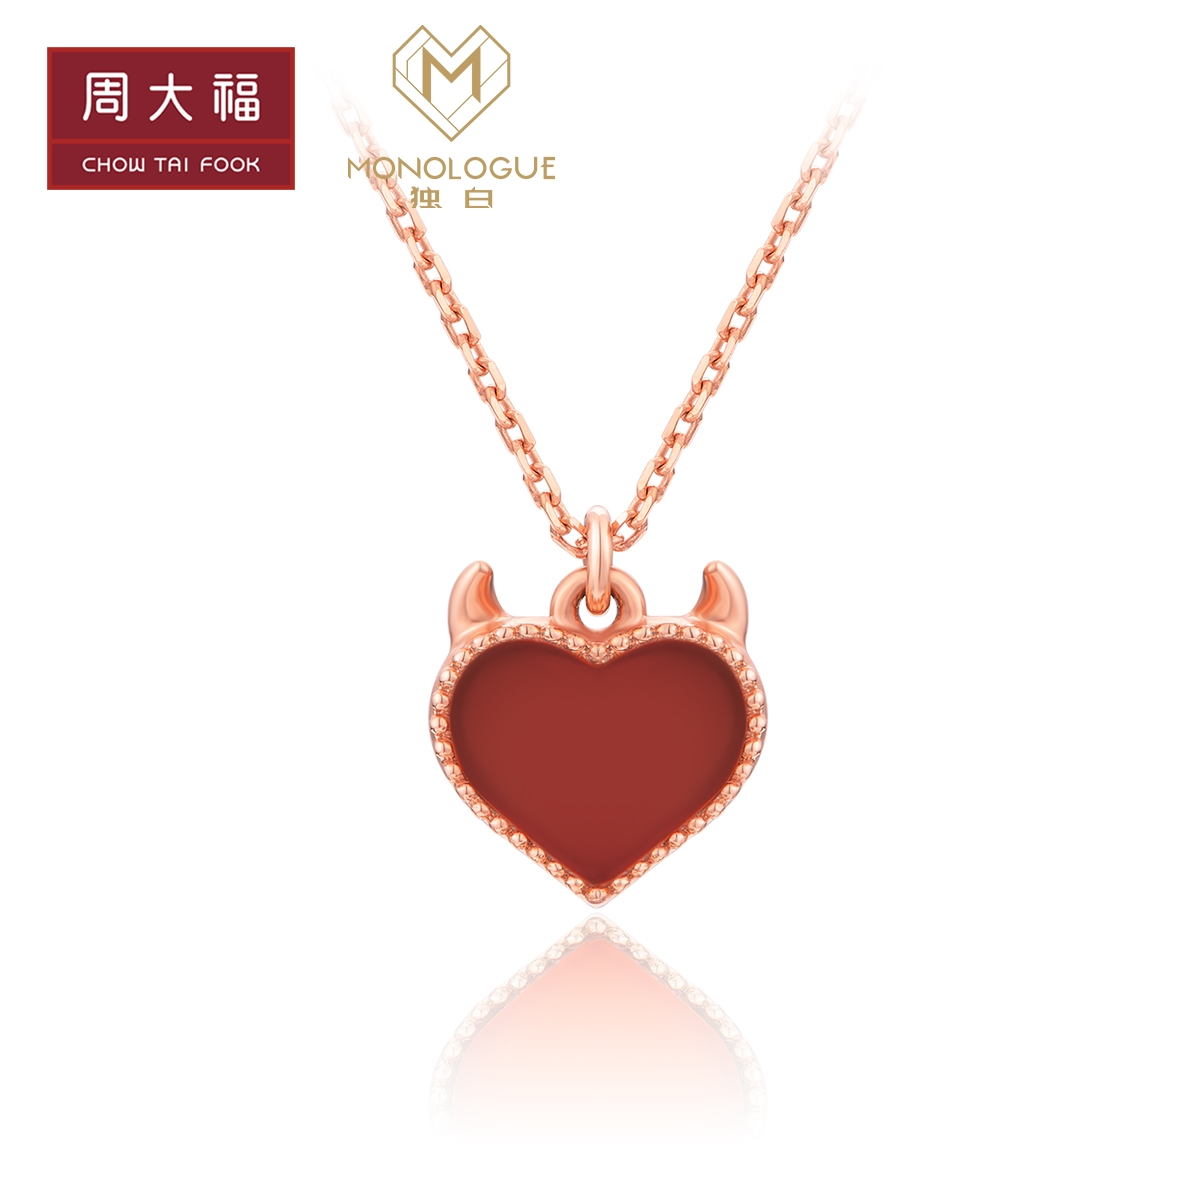 Zhou Dafu monologue monologue devil's heart 18K Gold Jade Necklace Ma multiple